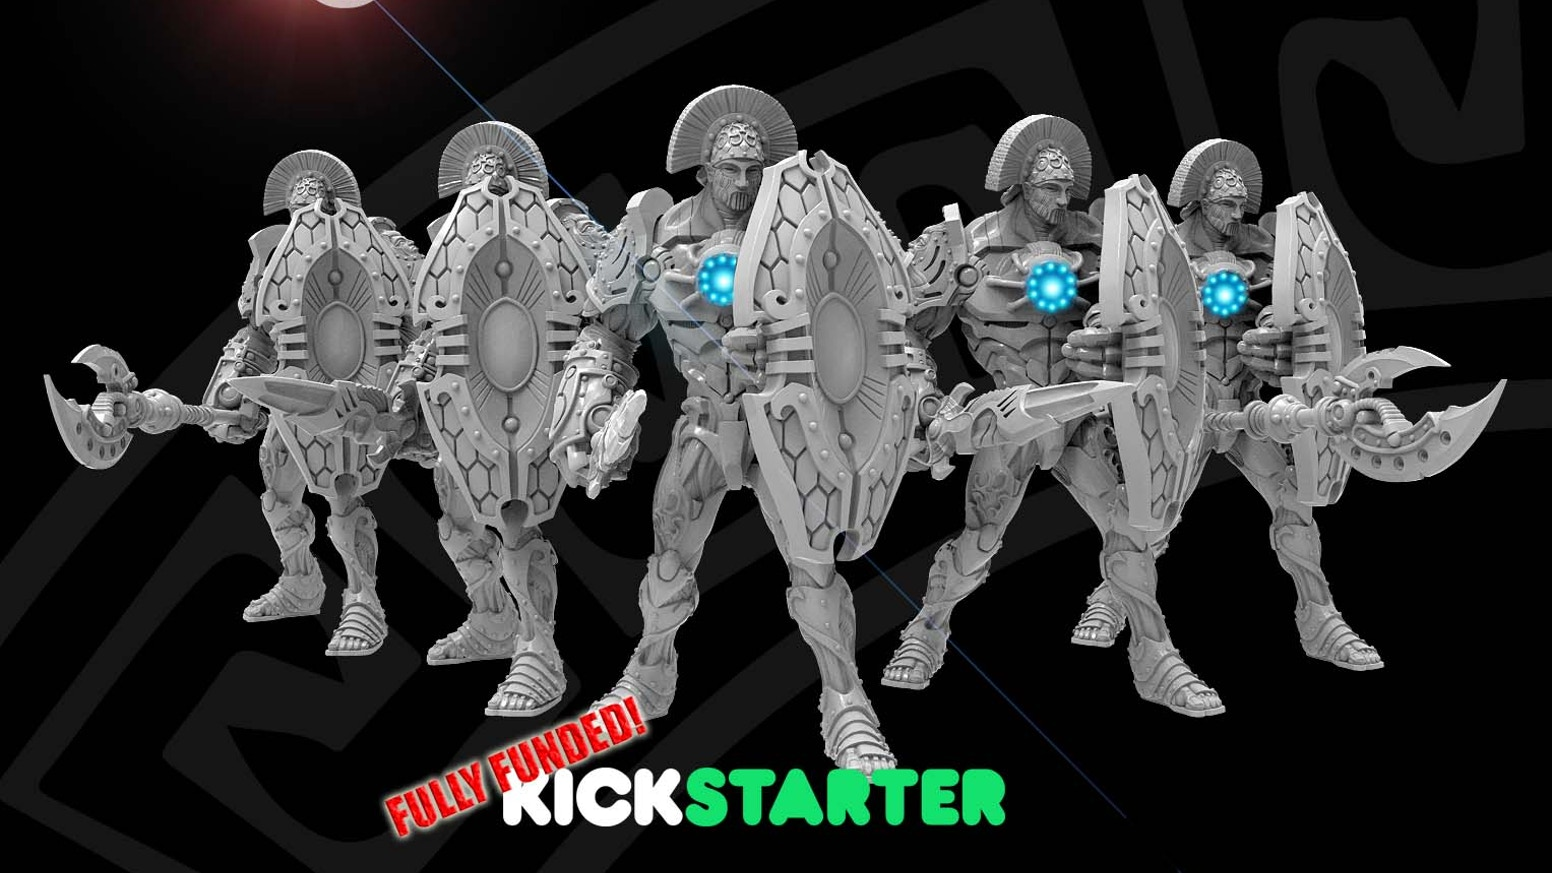 Help me fund the Argonauts! Sculpted by Dave Kidd, based on concept art from Roberto Cirillo, created by Fet Milner and myself!